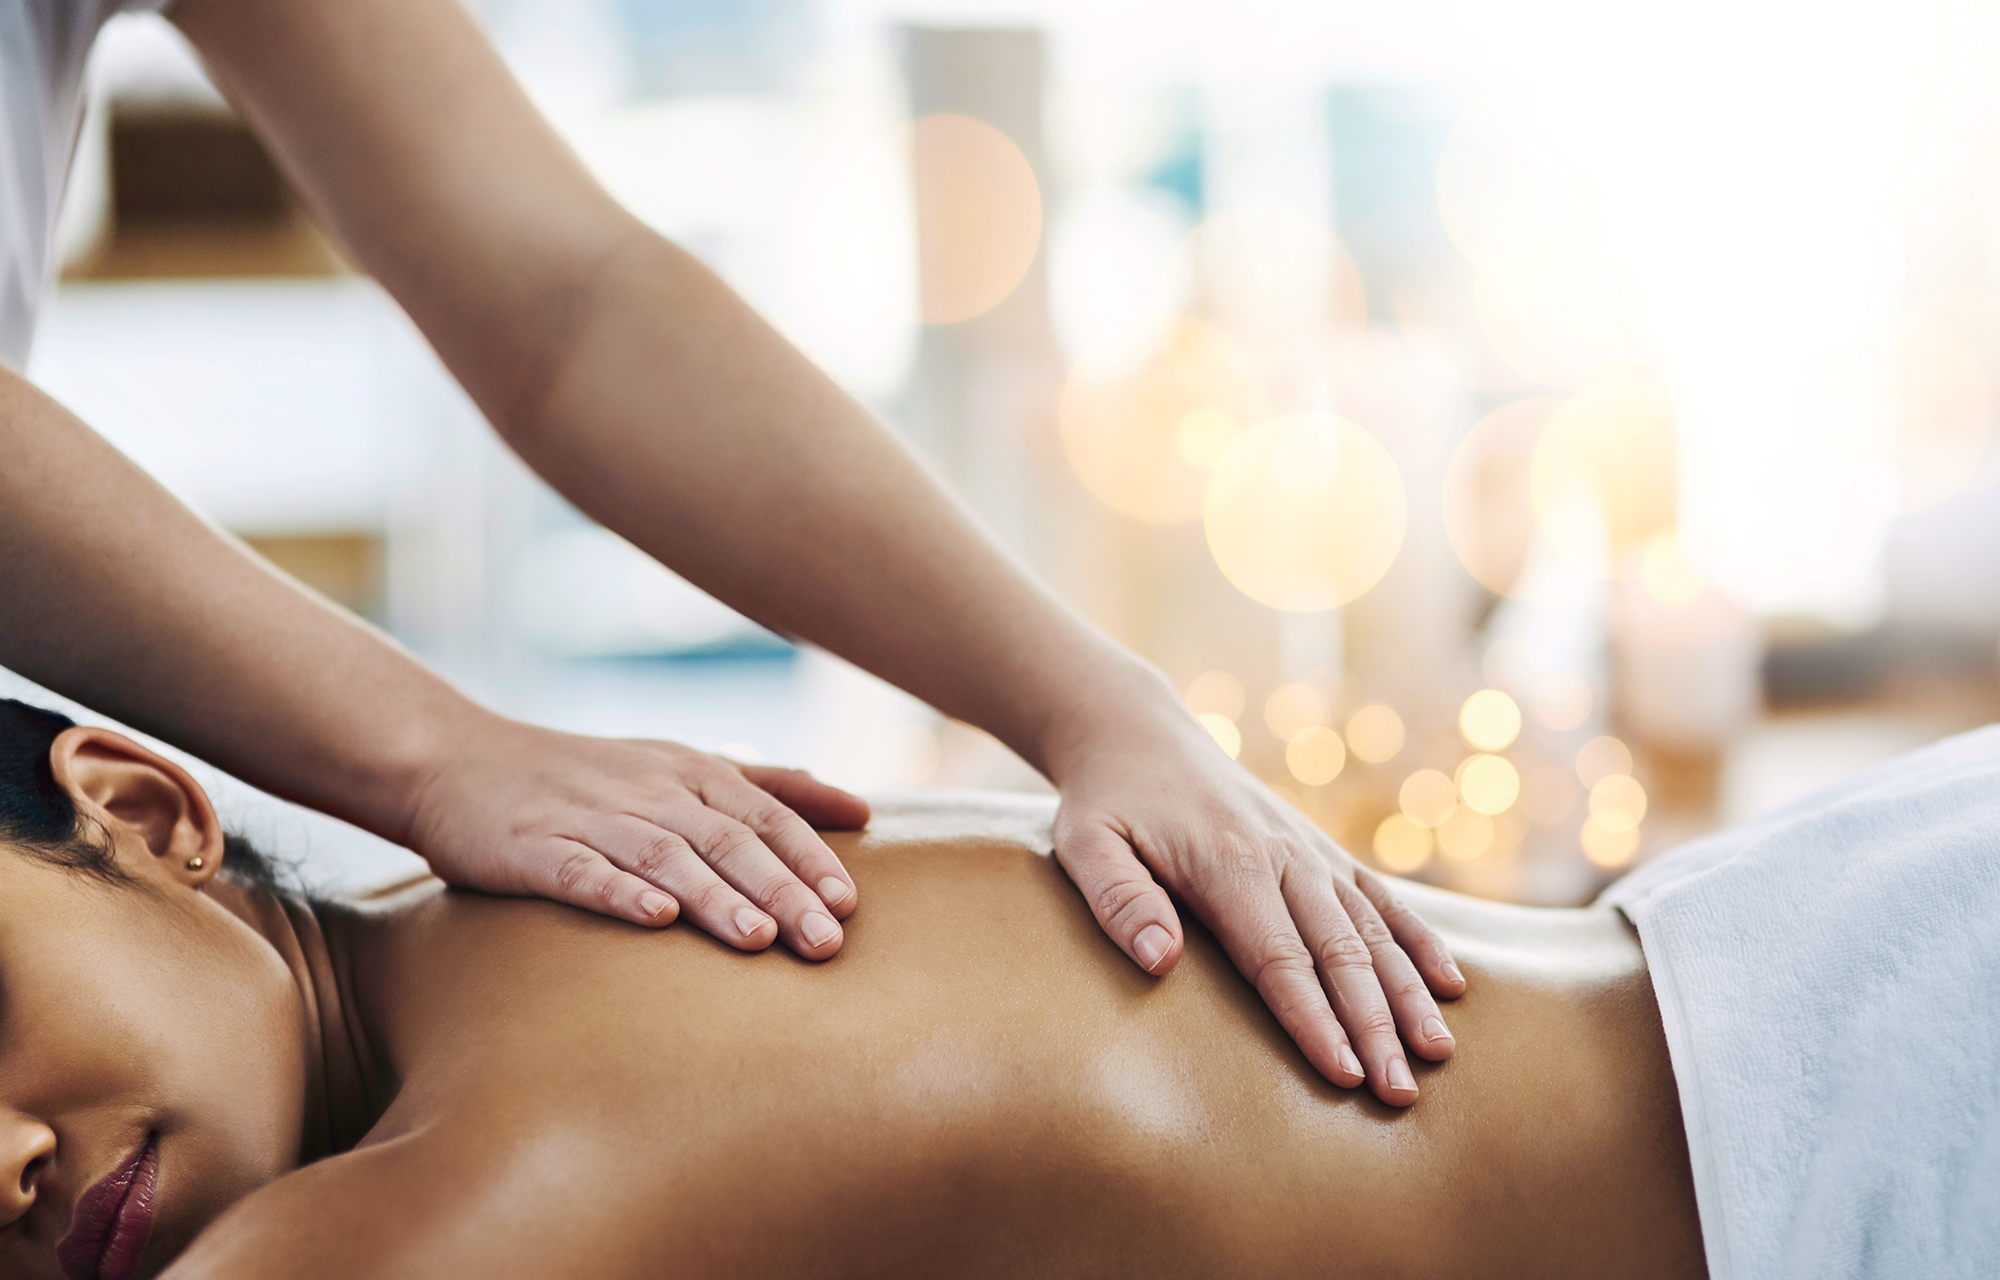 The Five Main Rules of Massage Etiquette